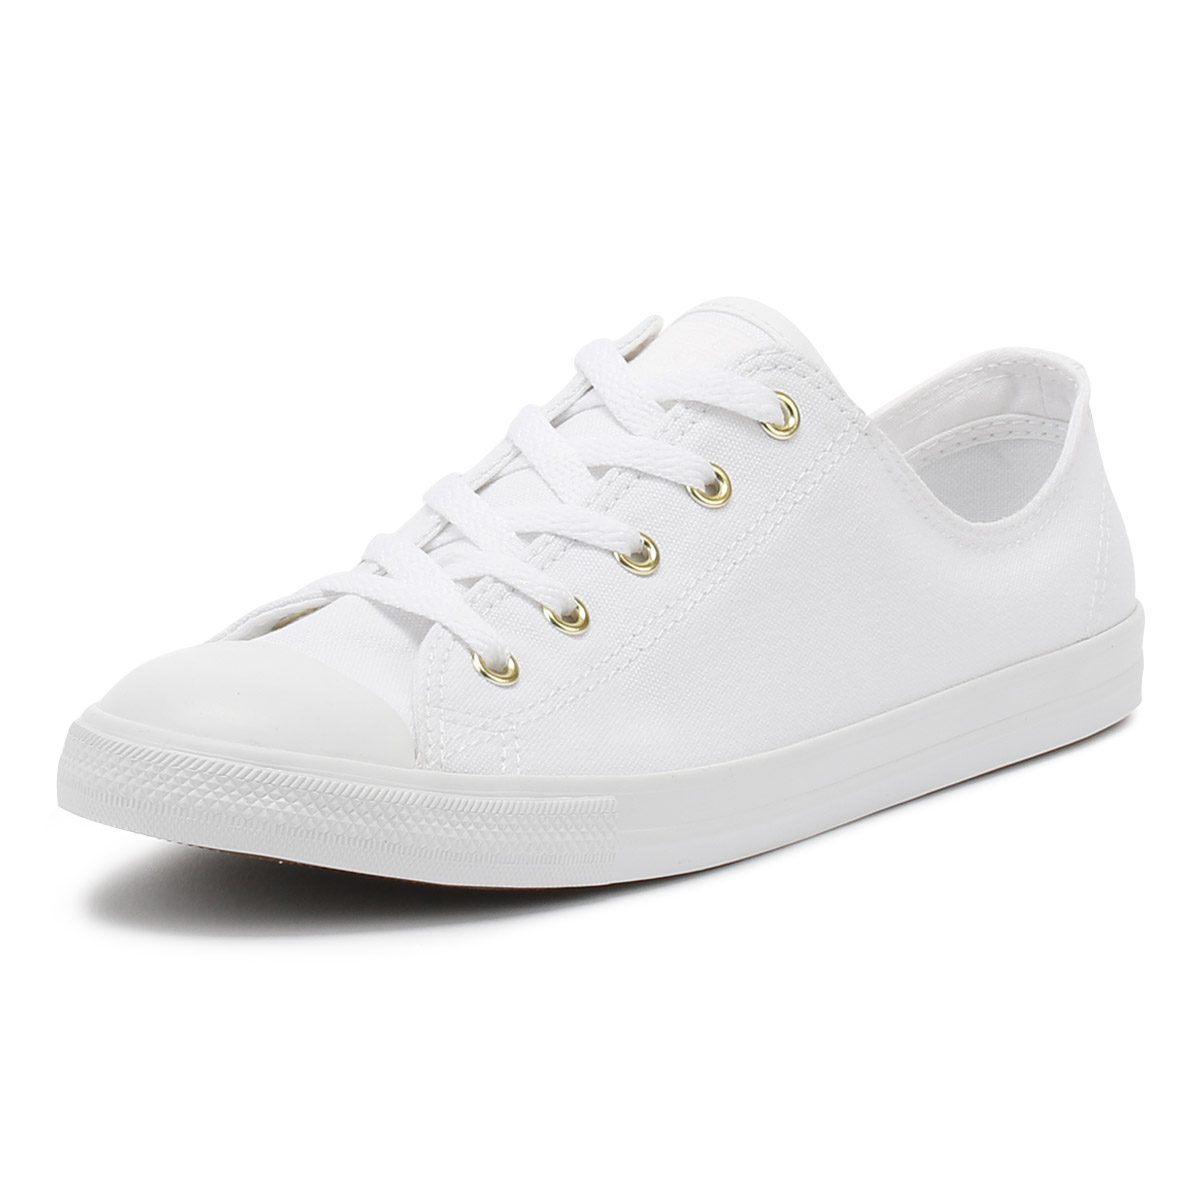 8f7723e57957 Details about Converse Chuck Taylor All Star Womens Ox Trainers White Dainty  Ox Casual Shoes